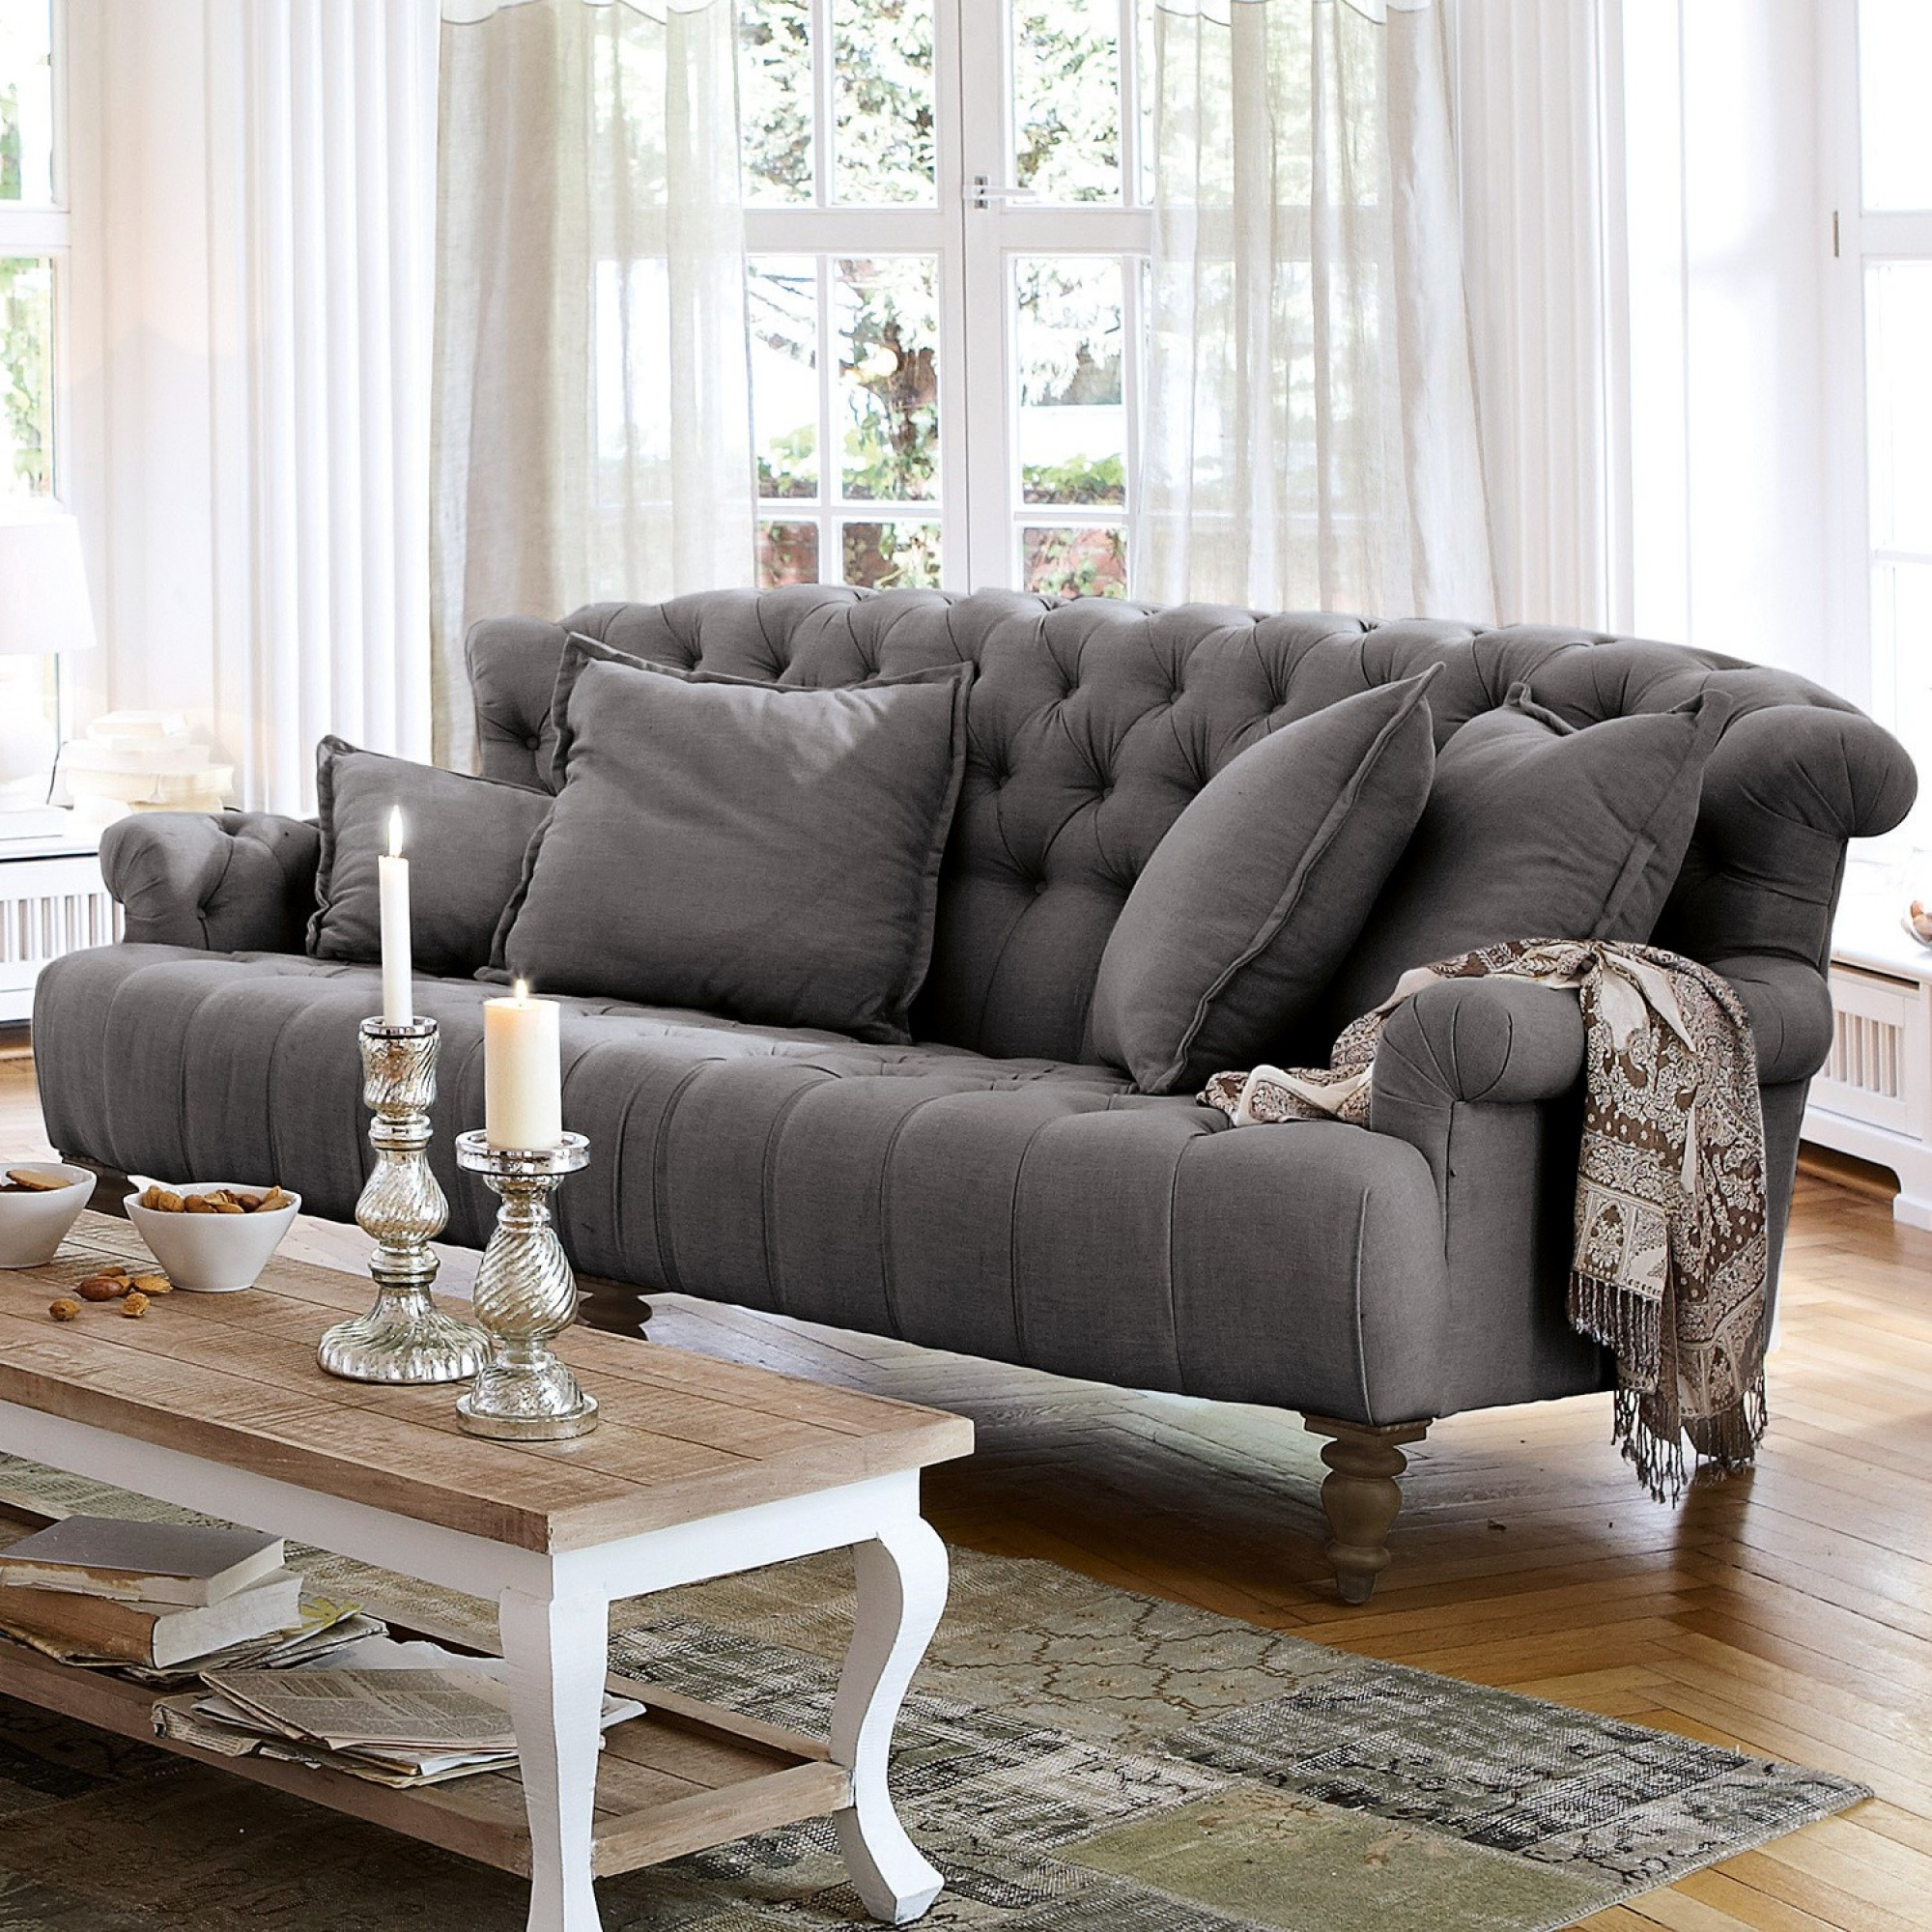 sofa springfield village anthrazit loberon. Black Bedroom Furniture Sets. Home Design Ideas